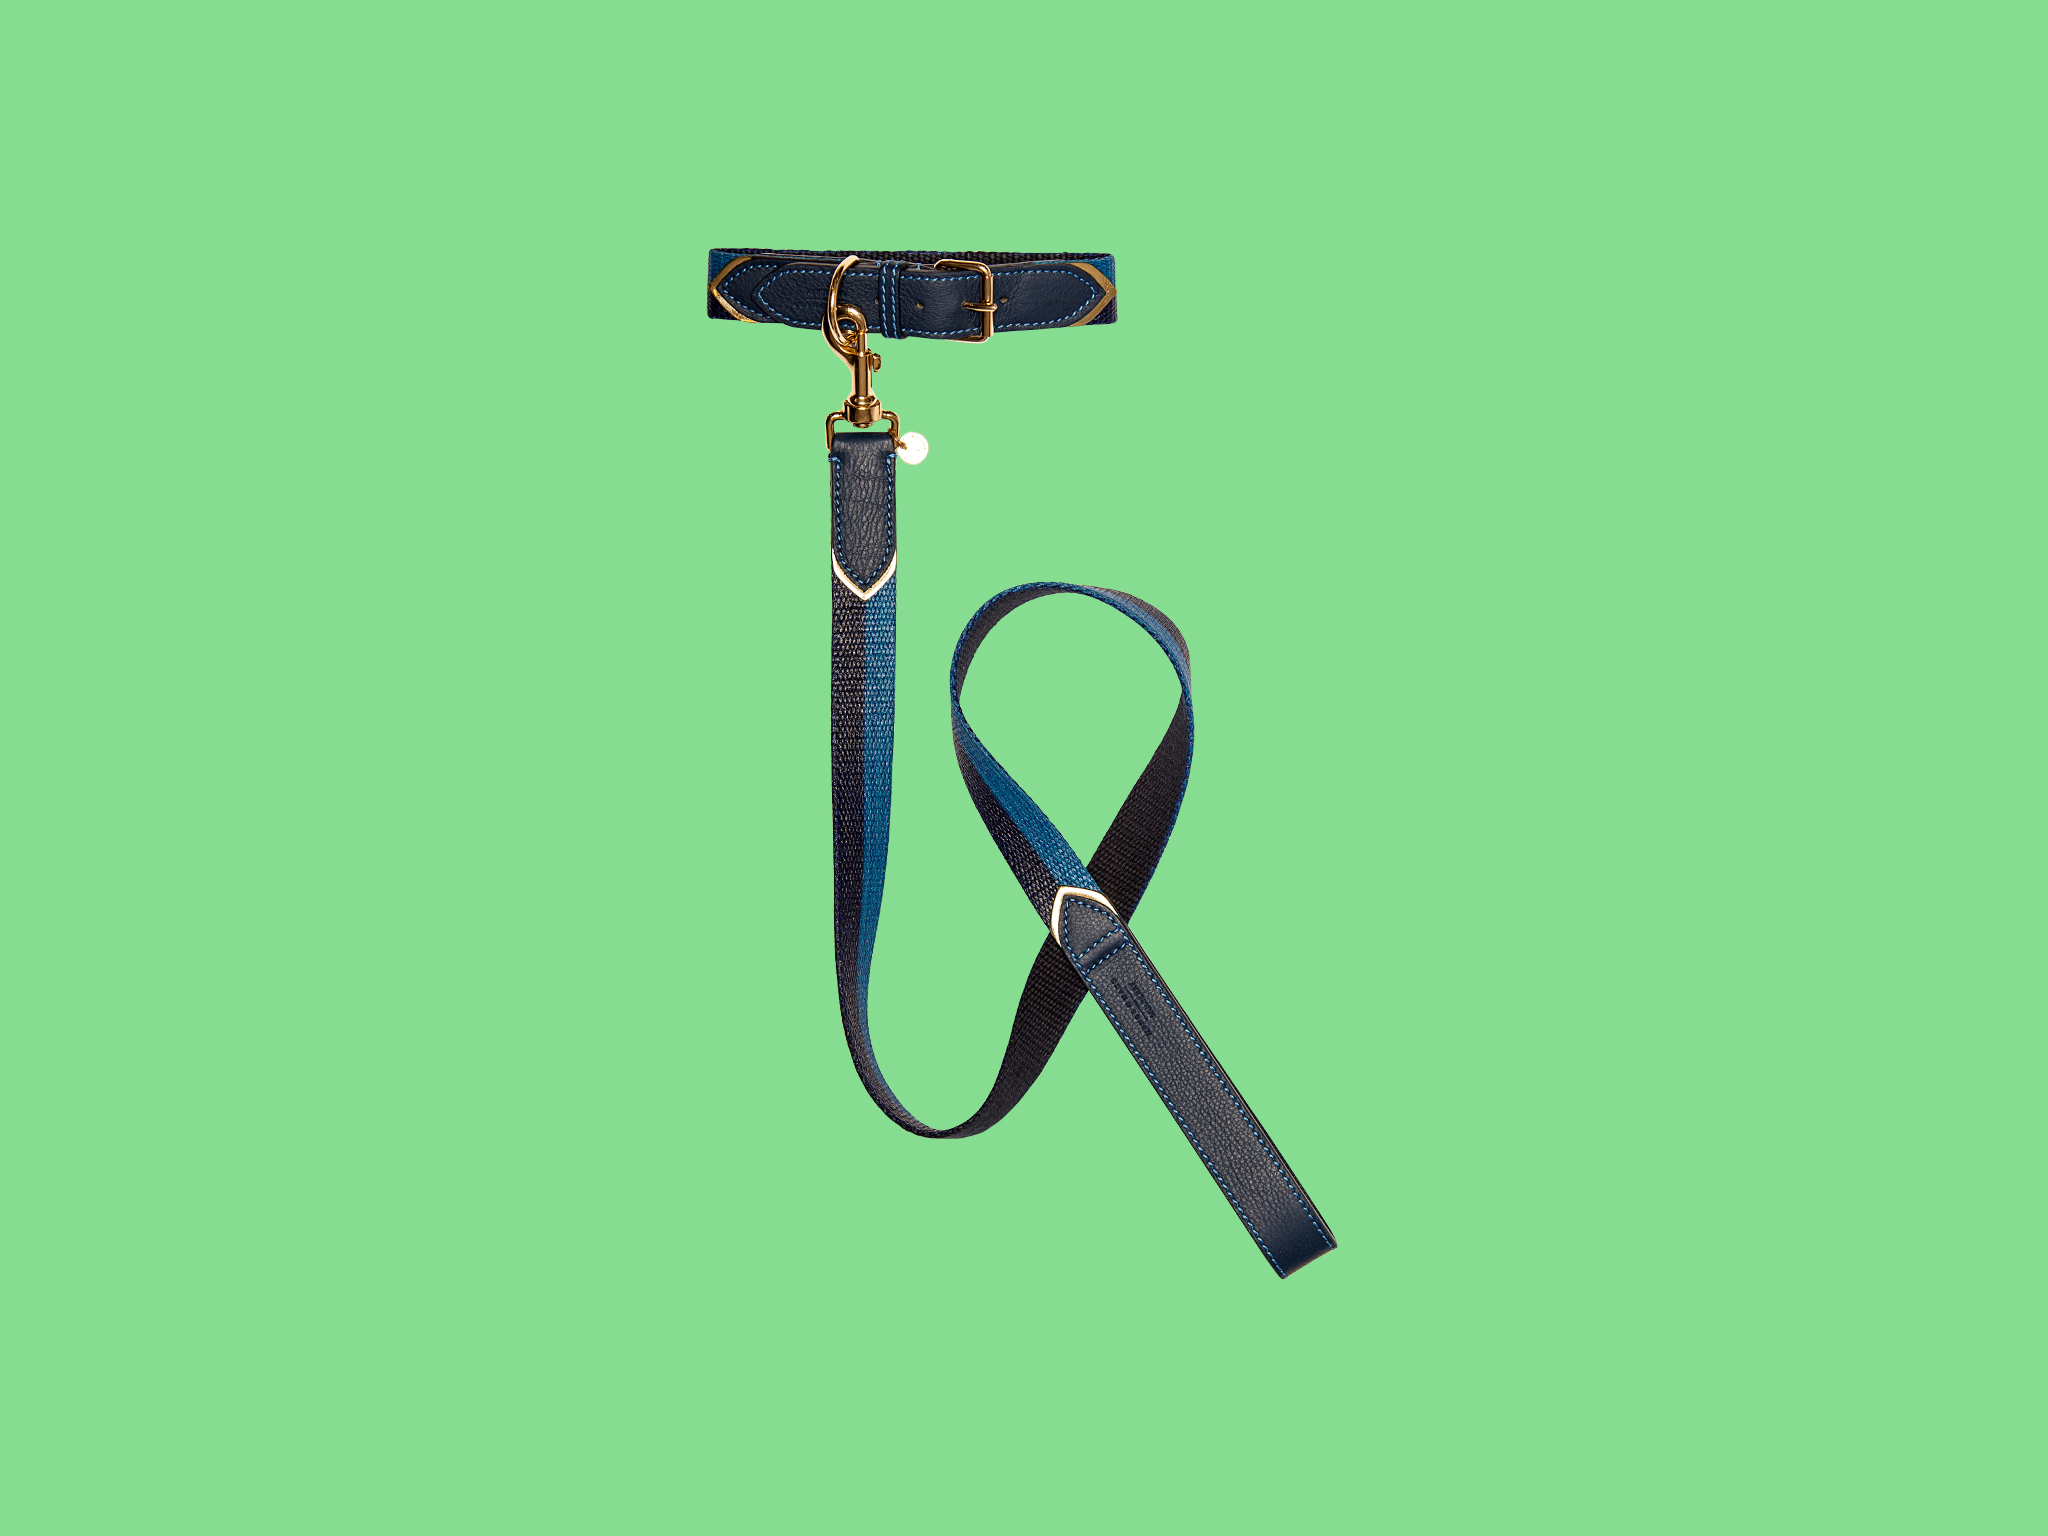 Dog lead and collar by Mungo & Maud for Mulberry